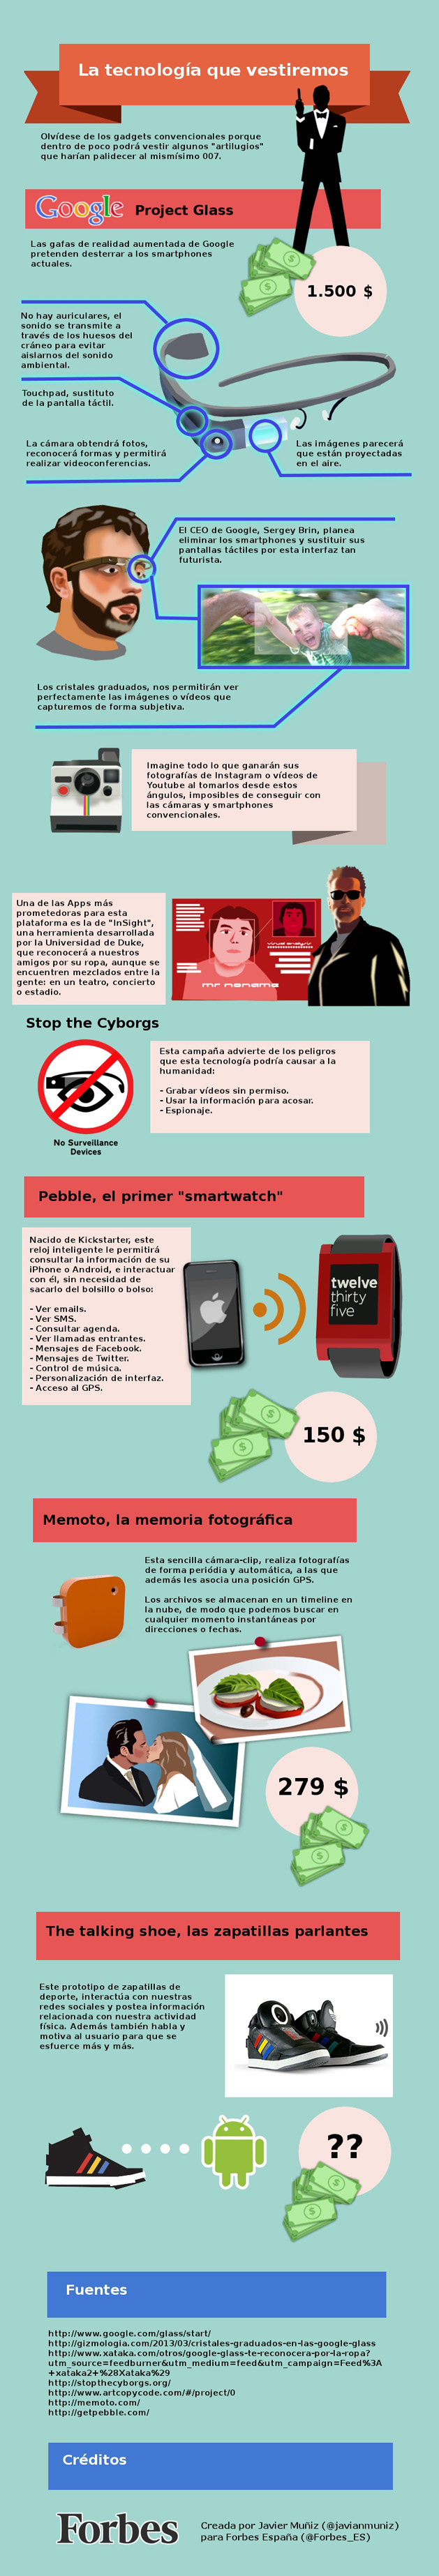 google-glass-forbes